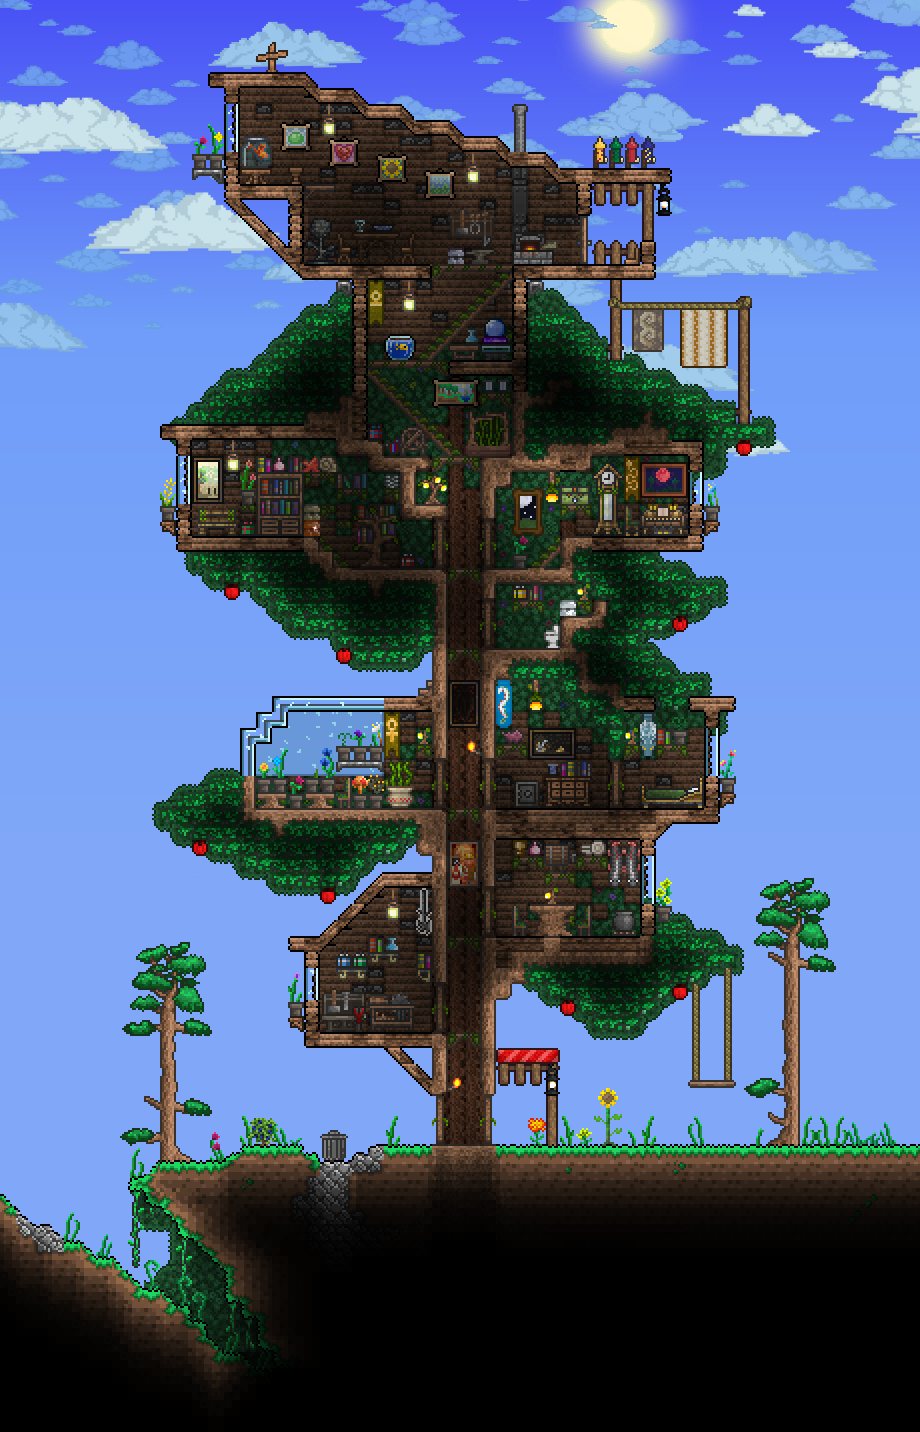 PC - ~FLOR3NCE2456's BUILDS COLLECTION~